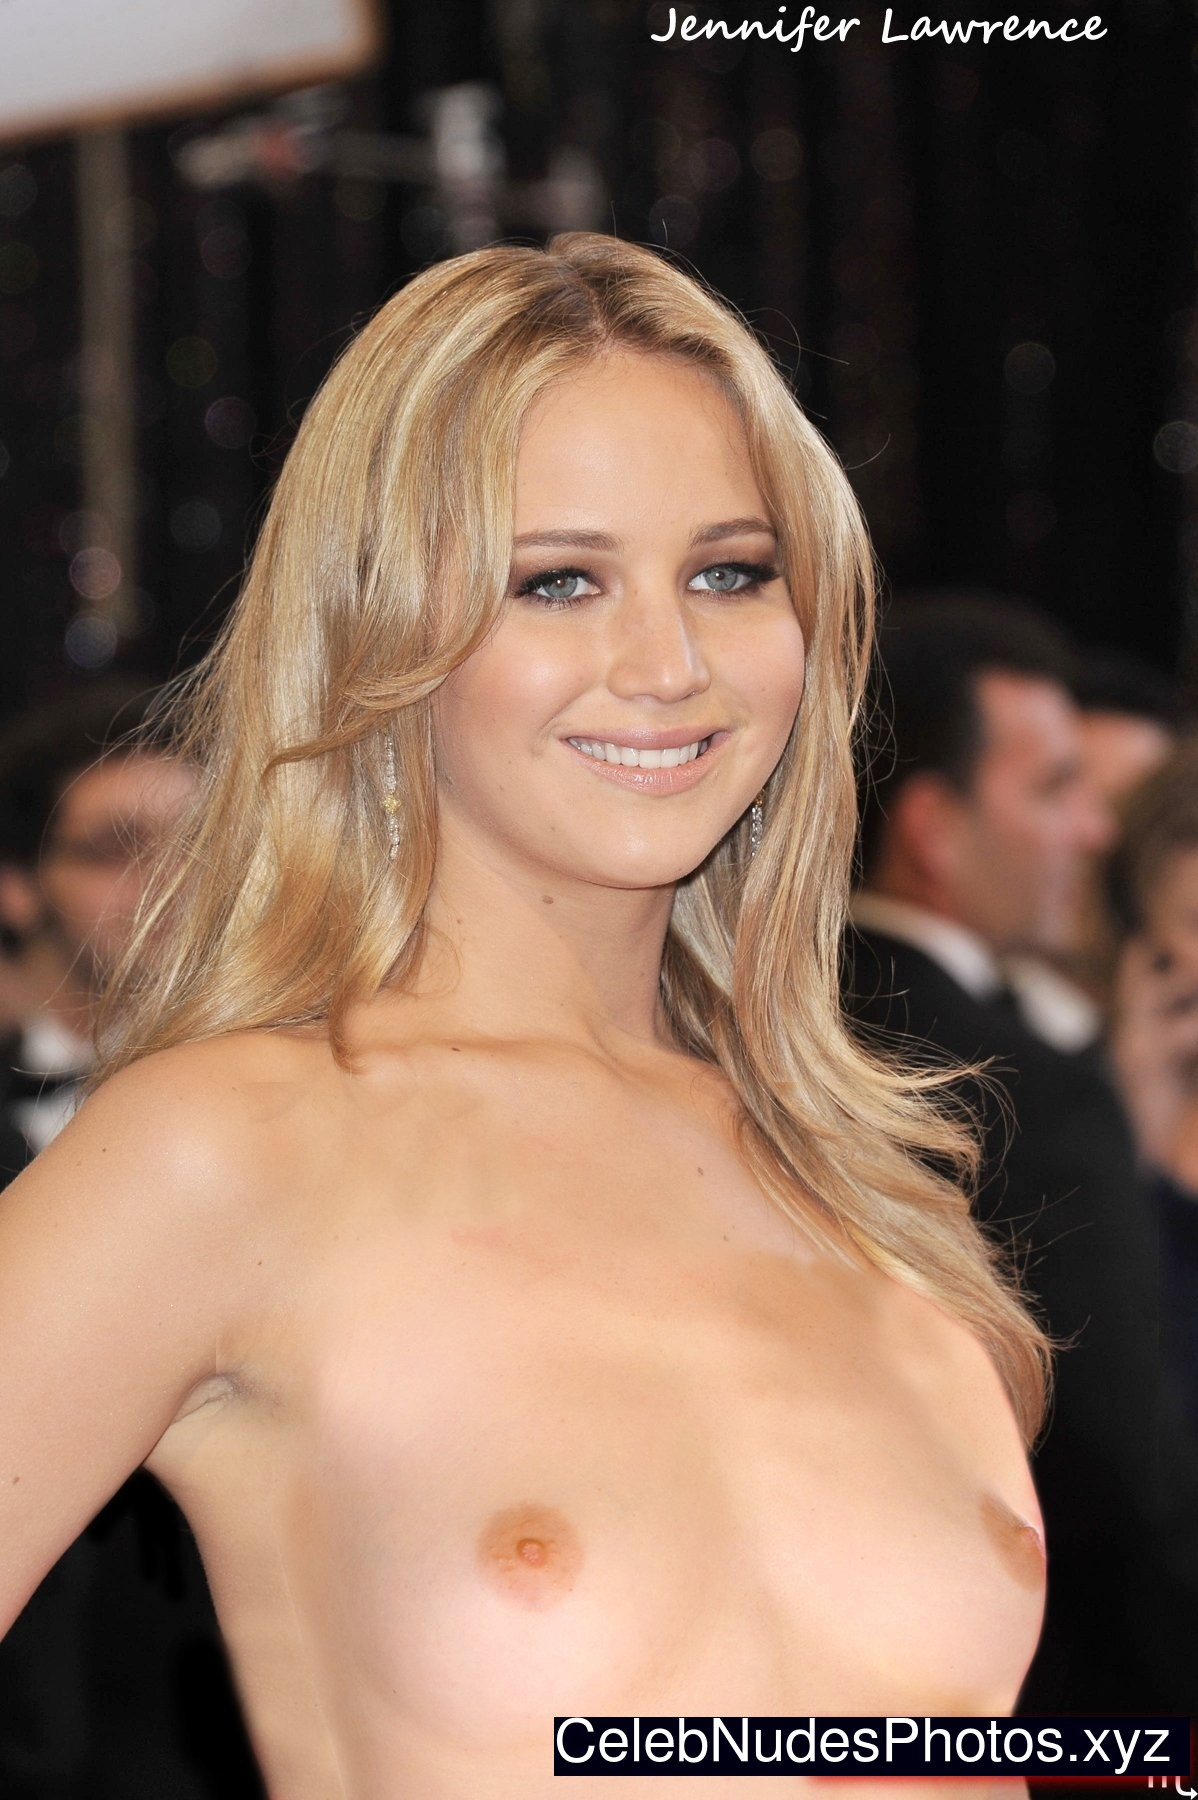 Jennifer Lawrence naked celebritys